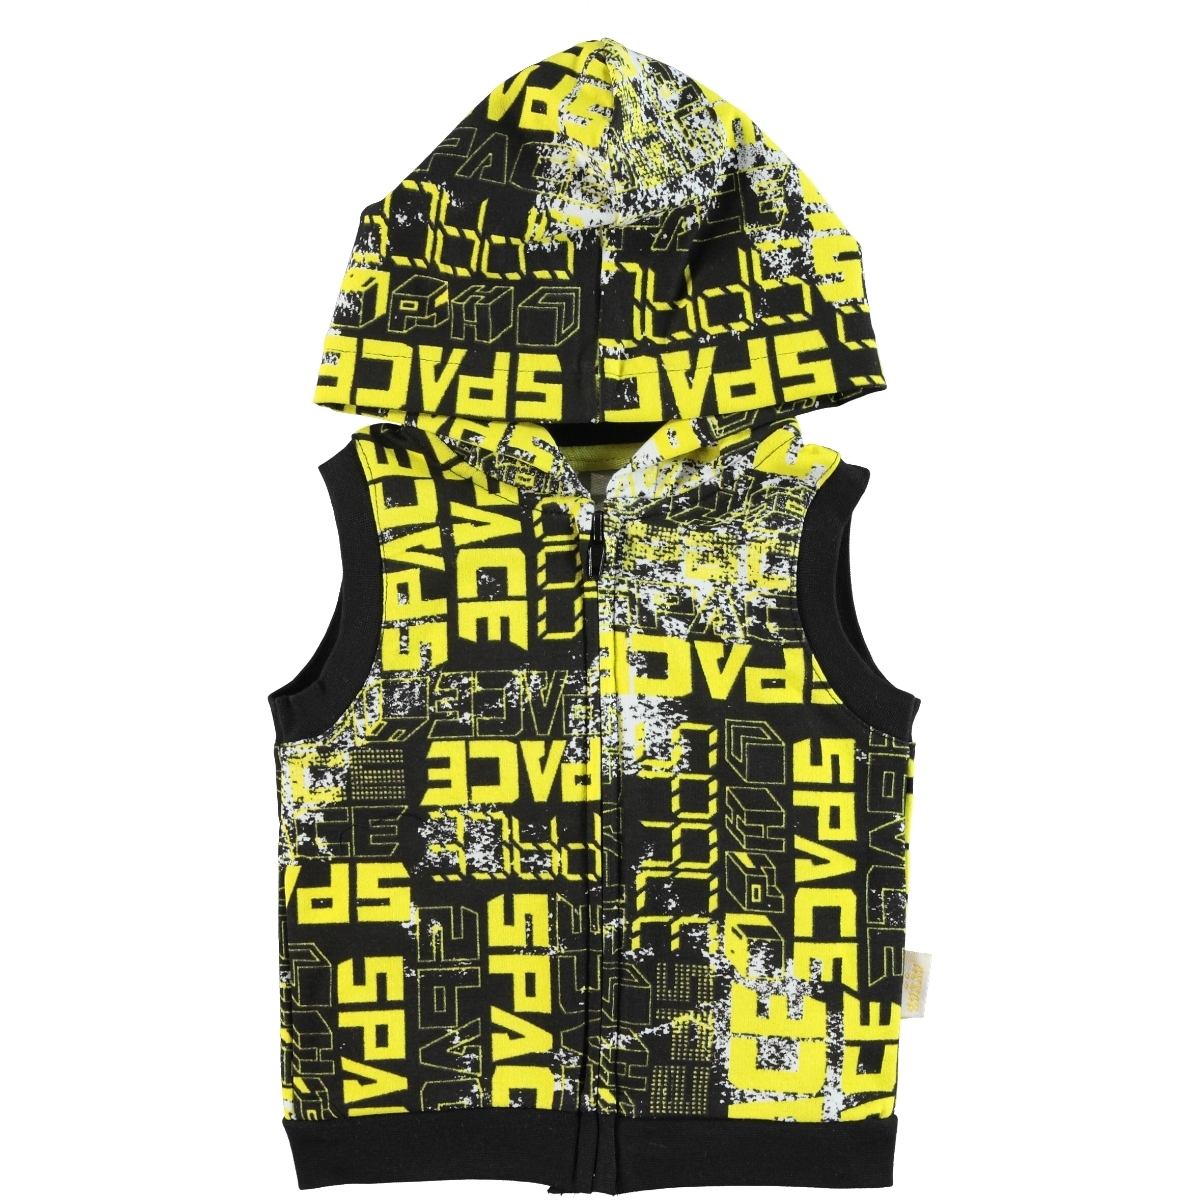 Kujju 6-18 Months Baby Boy Hooded Vest Yellow